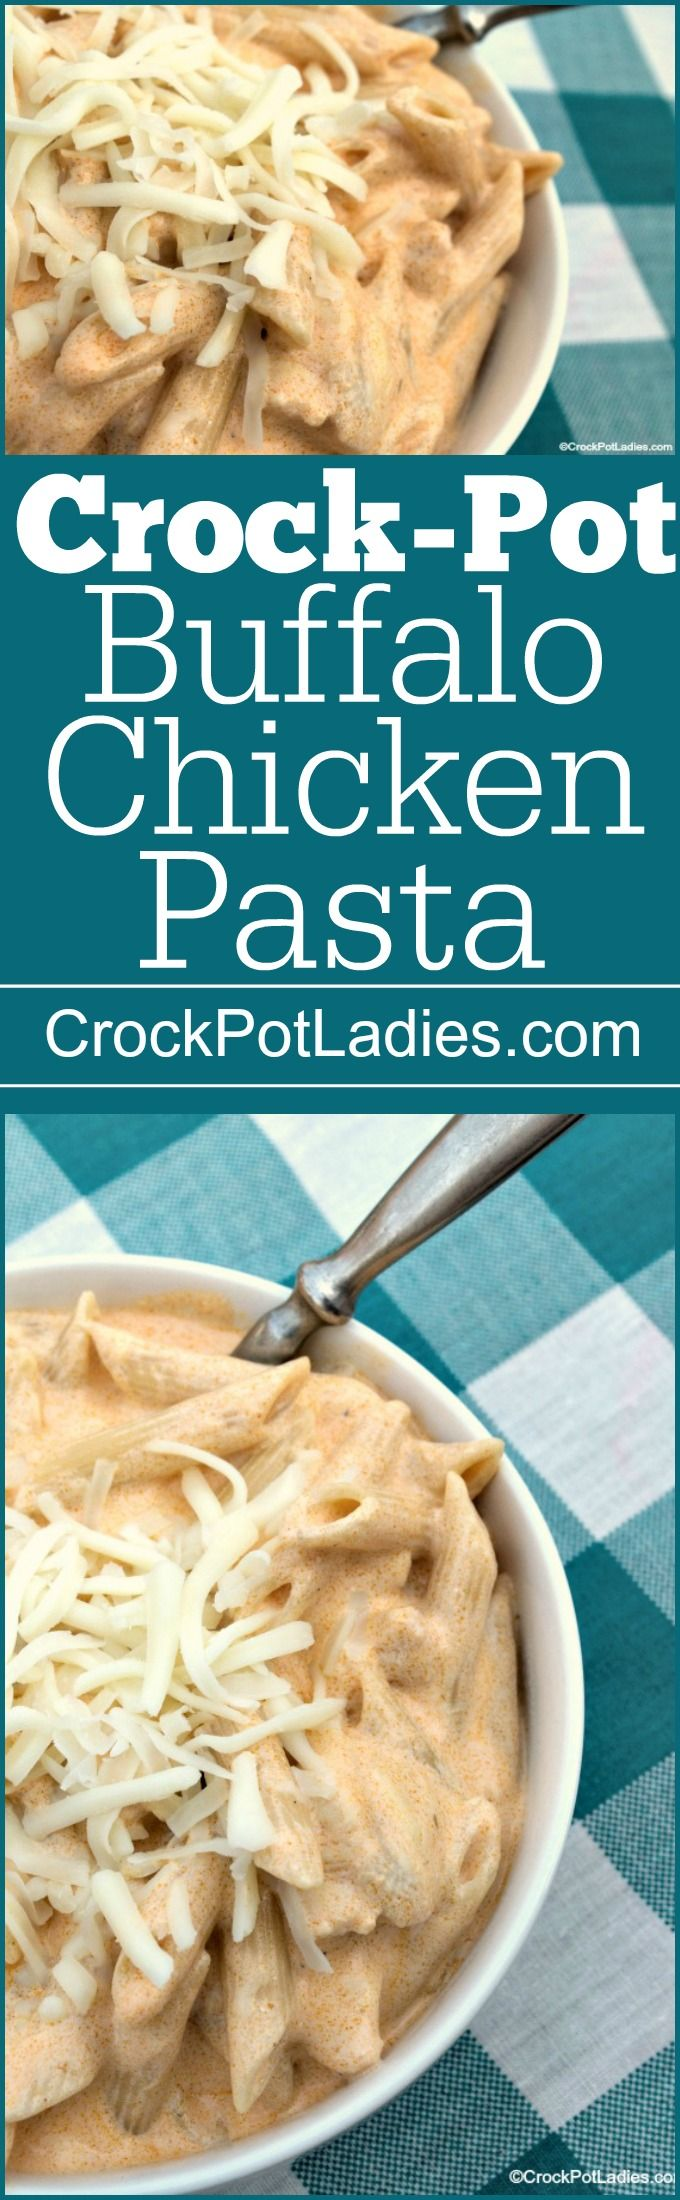 Crock-Pot Buffalo Chicken Pasta - delicious and easy dinner recipe that is full of spicy (but not too spicy) flavor. If you like buffalo chicken wings you will LOVE this pasta version made in your slow cooker   CrockPotLadies.com